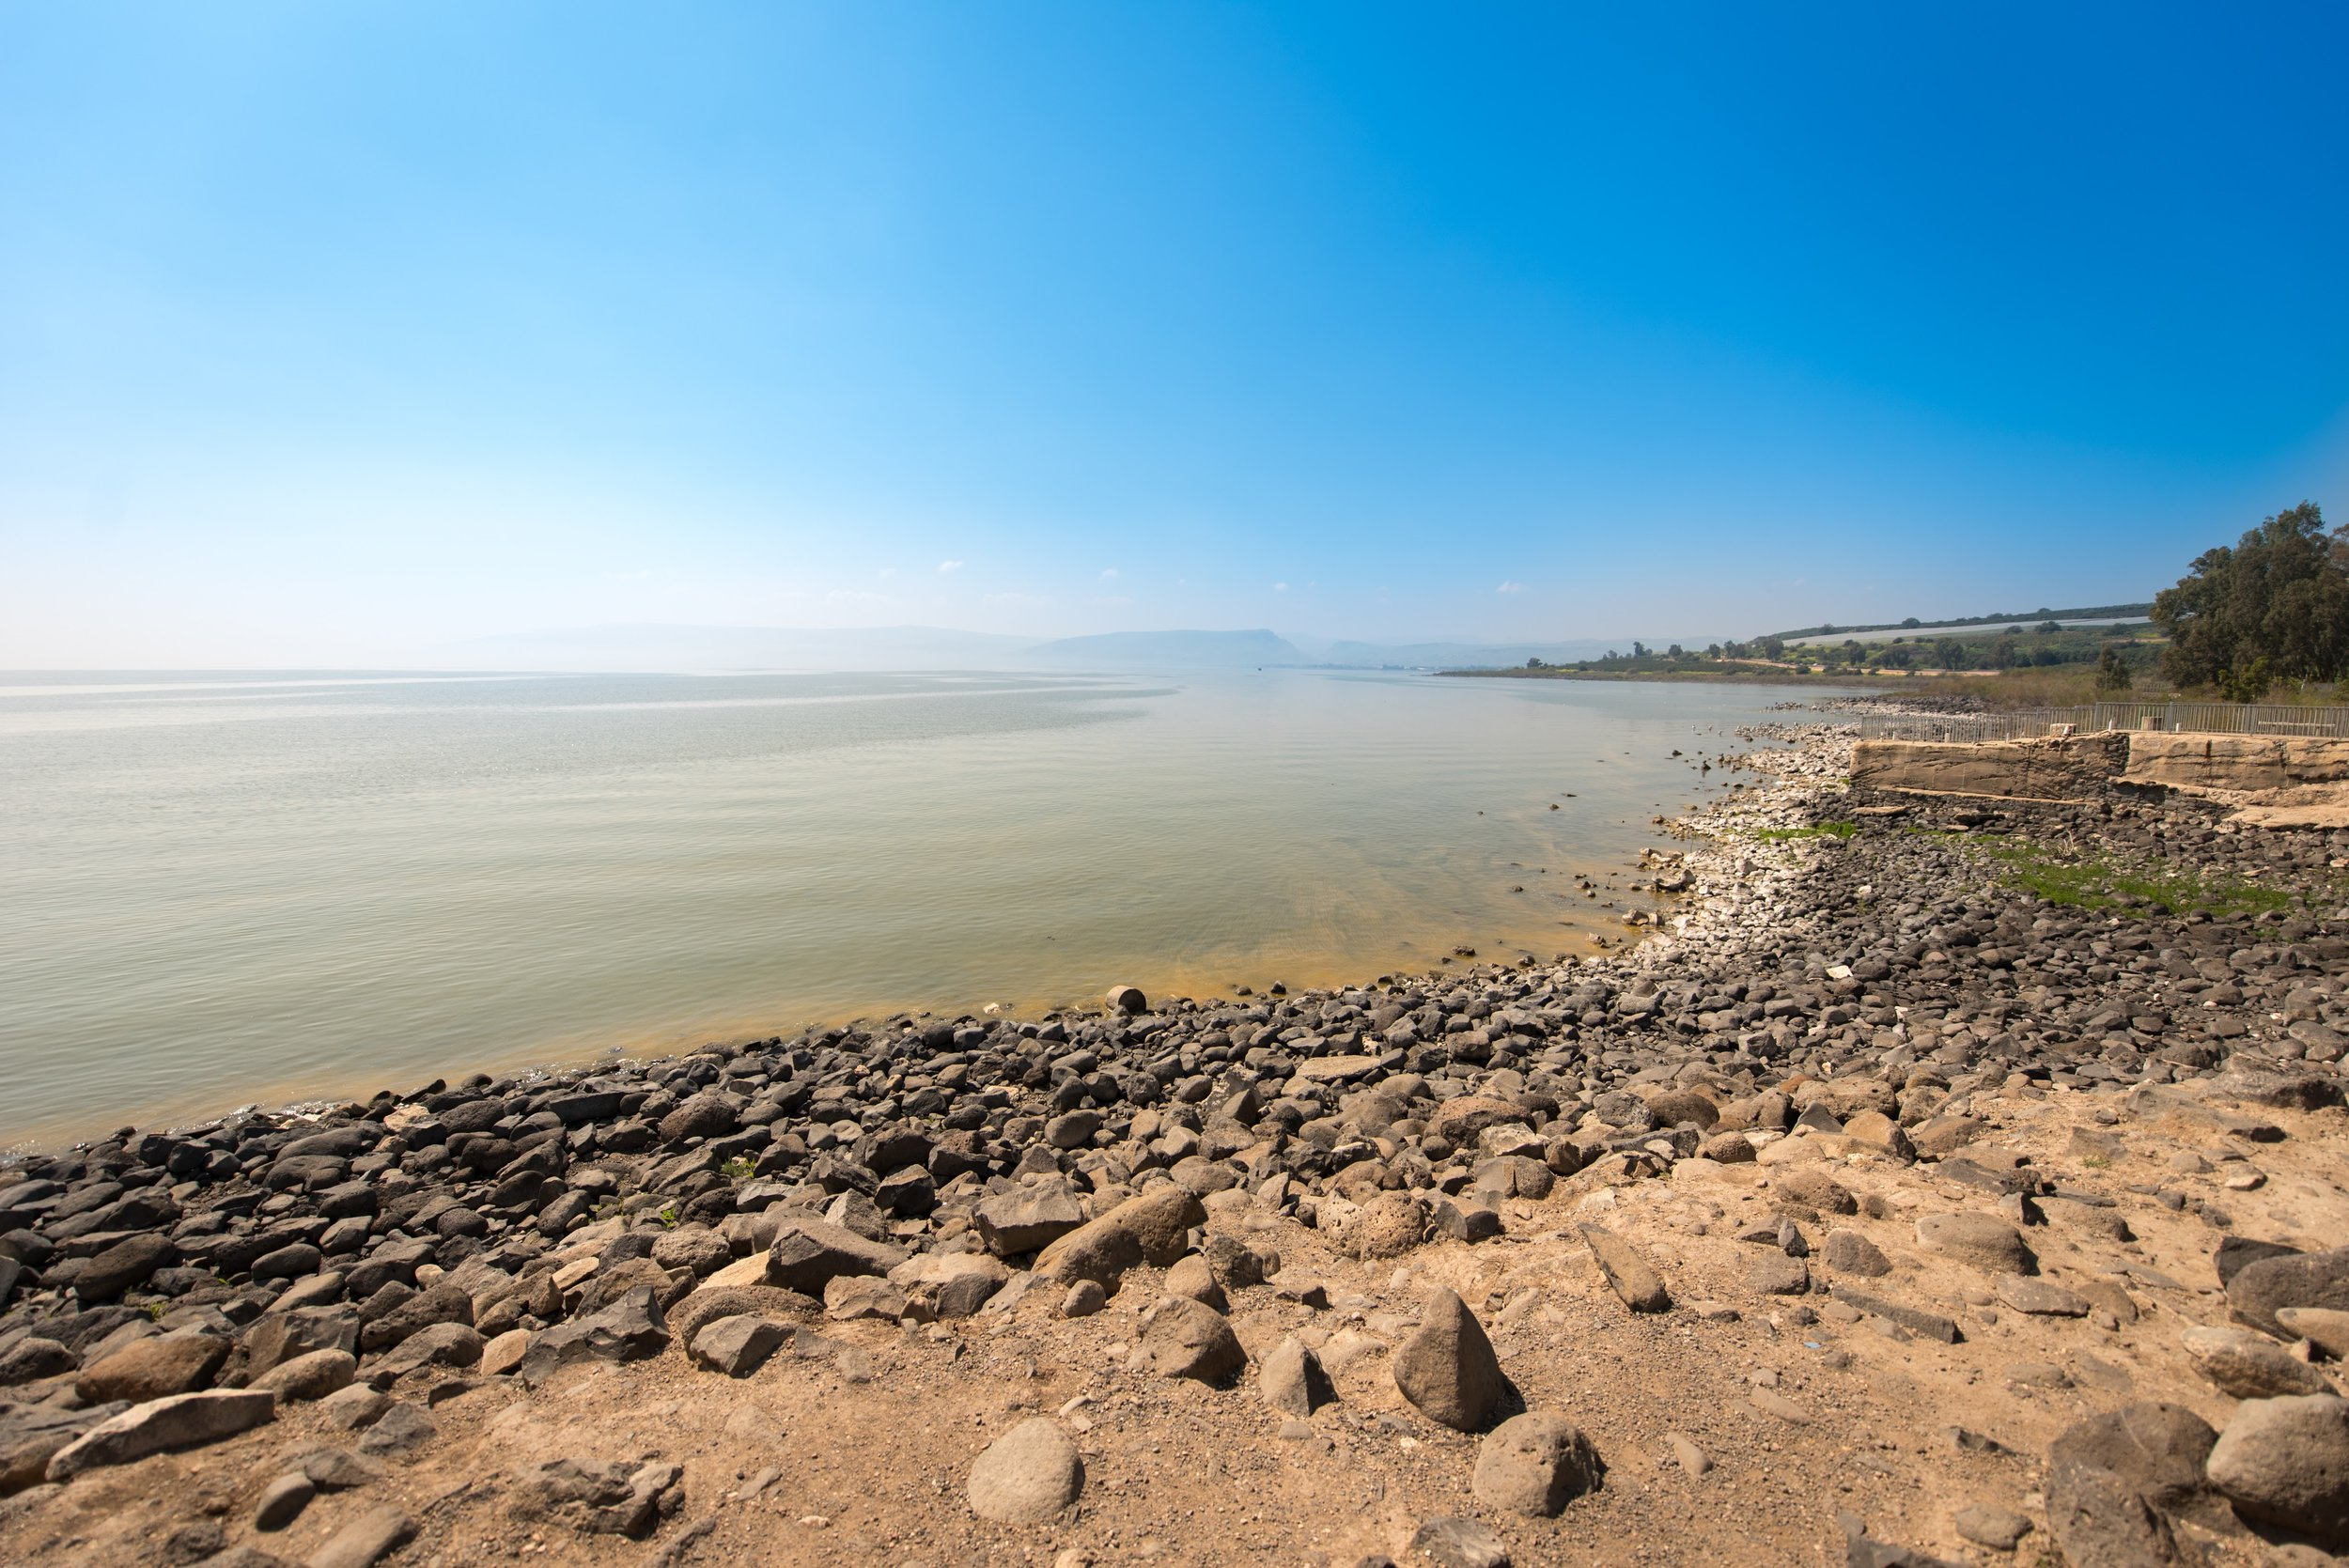 The shore where Jesus called his disciples.